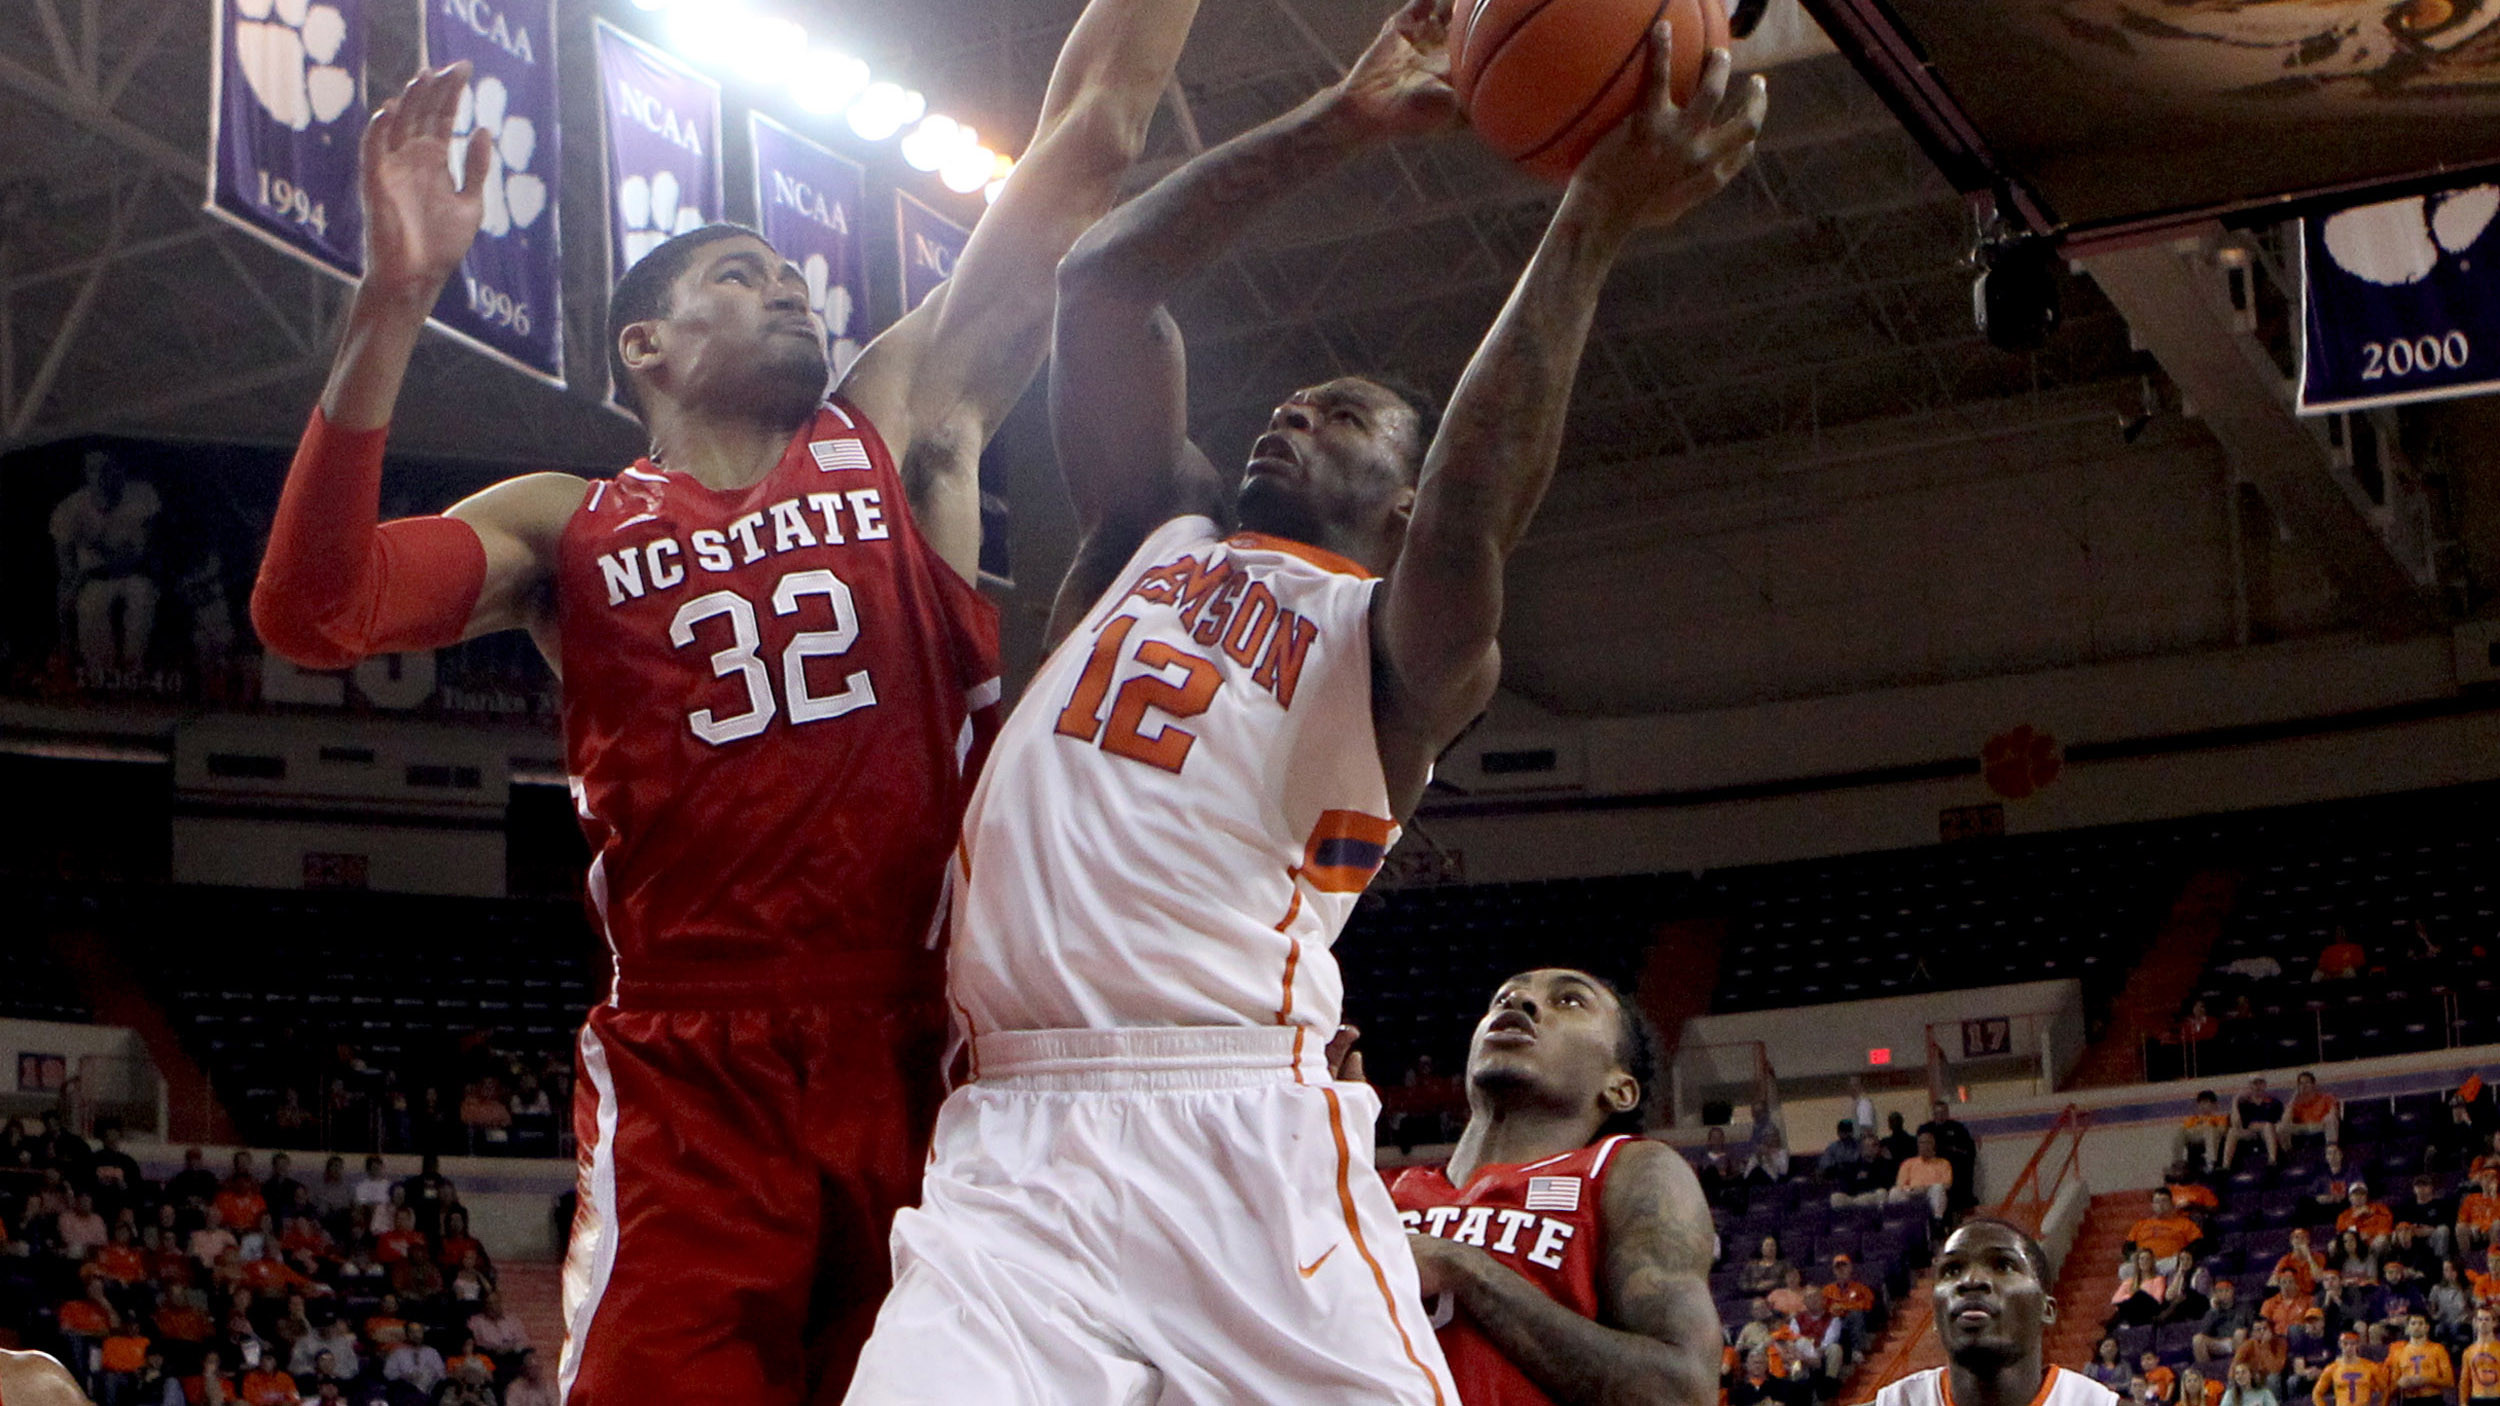 Clemson Snaps Skid with 73-56 Victory over NC State